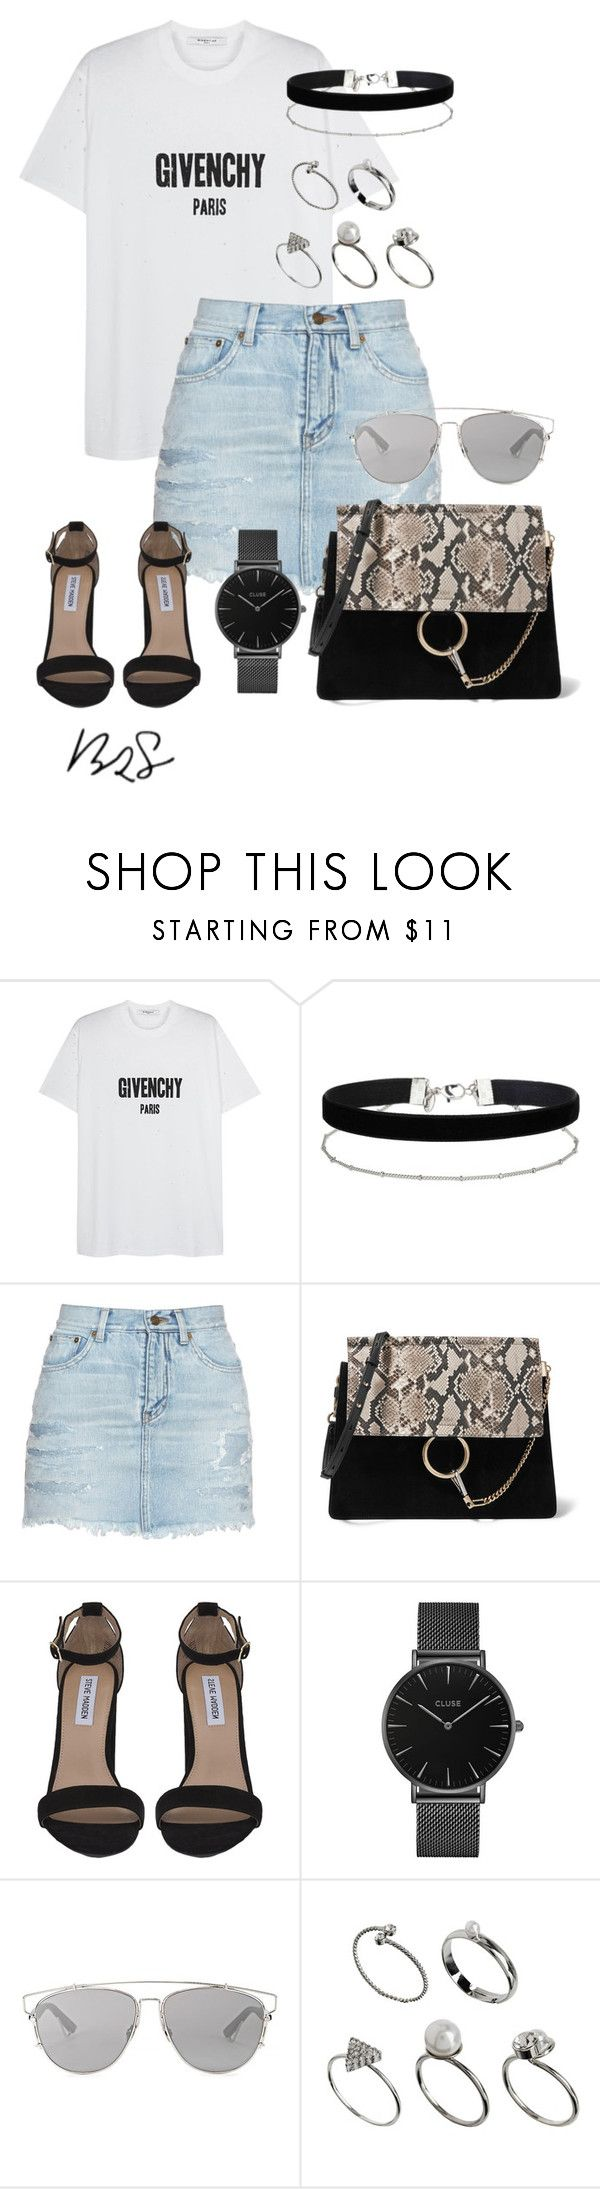 """""""#750"""" by blendingtwostyles ❤ liked on Polyvore featuring Givenchy, Miss Selfridge, Yves Saint Laurent, Chloé, Steve Madden, CLUSE, Christian Dior and ASOS"""